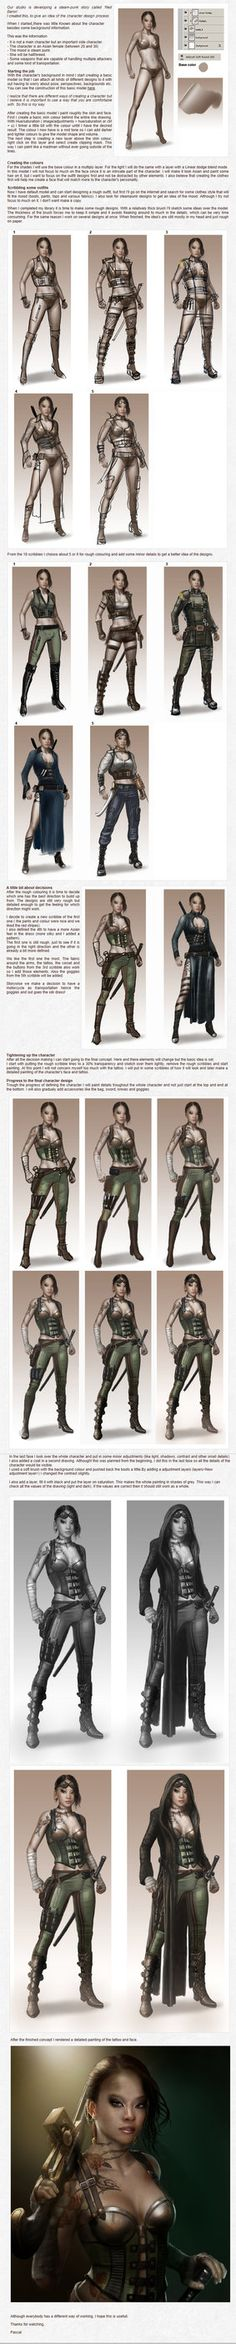 Character creation part 2 by PascaldeJong on DeviantArt